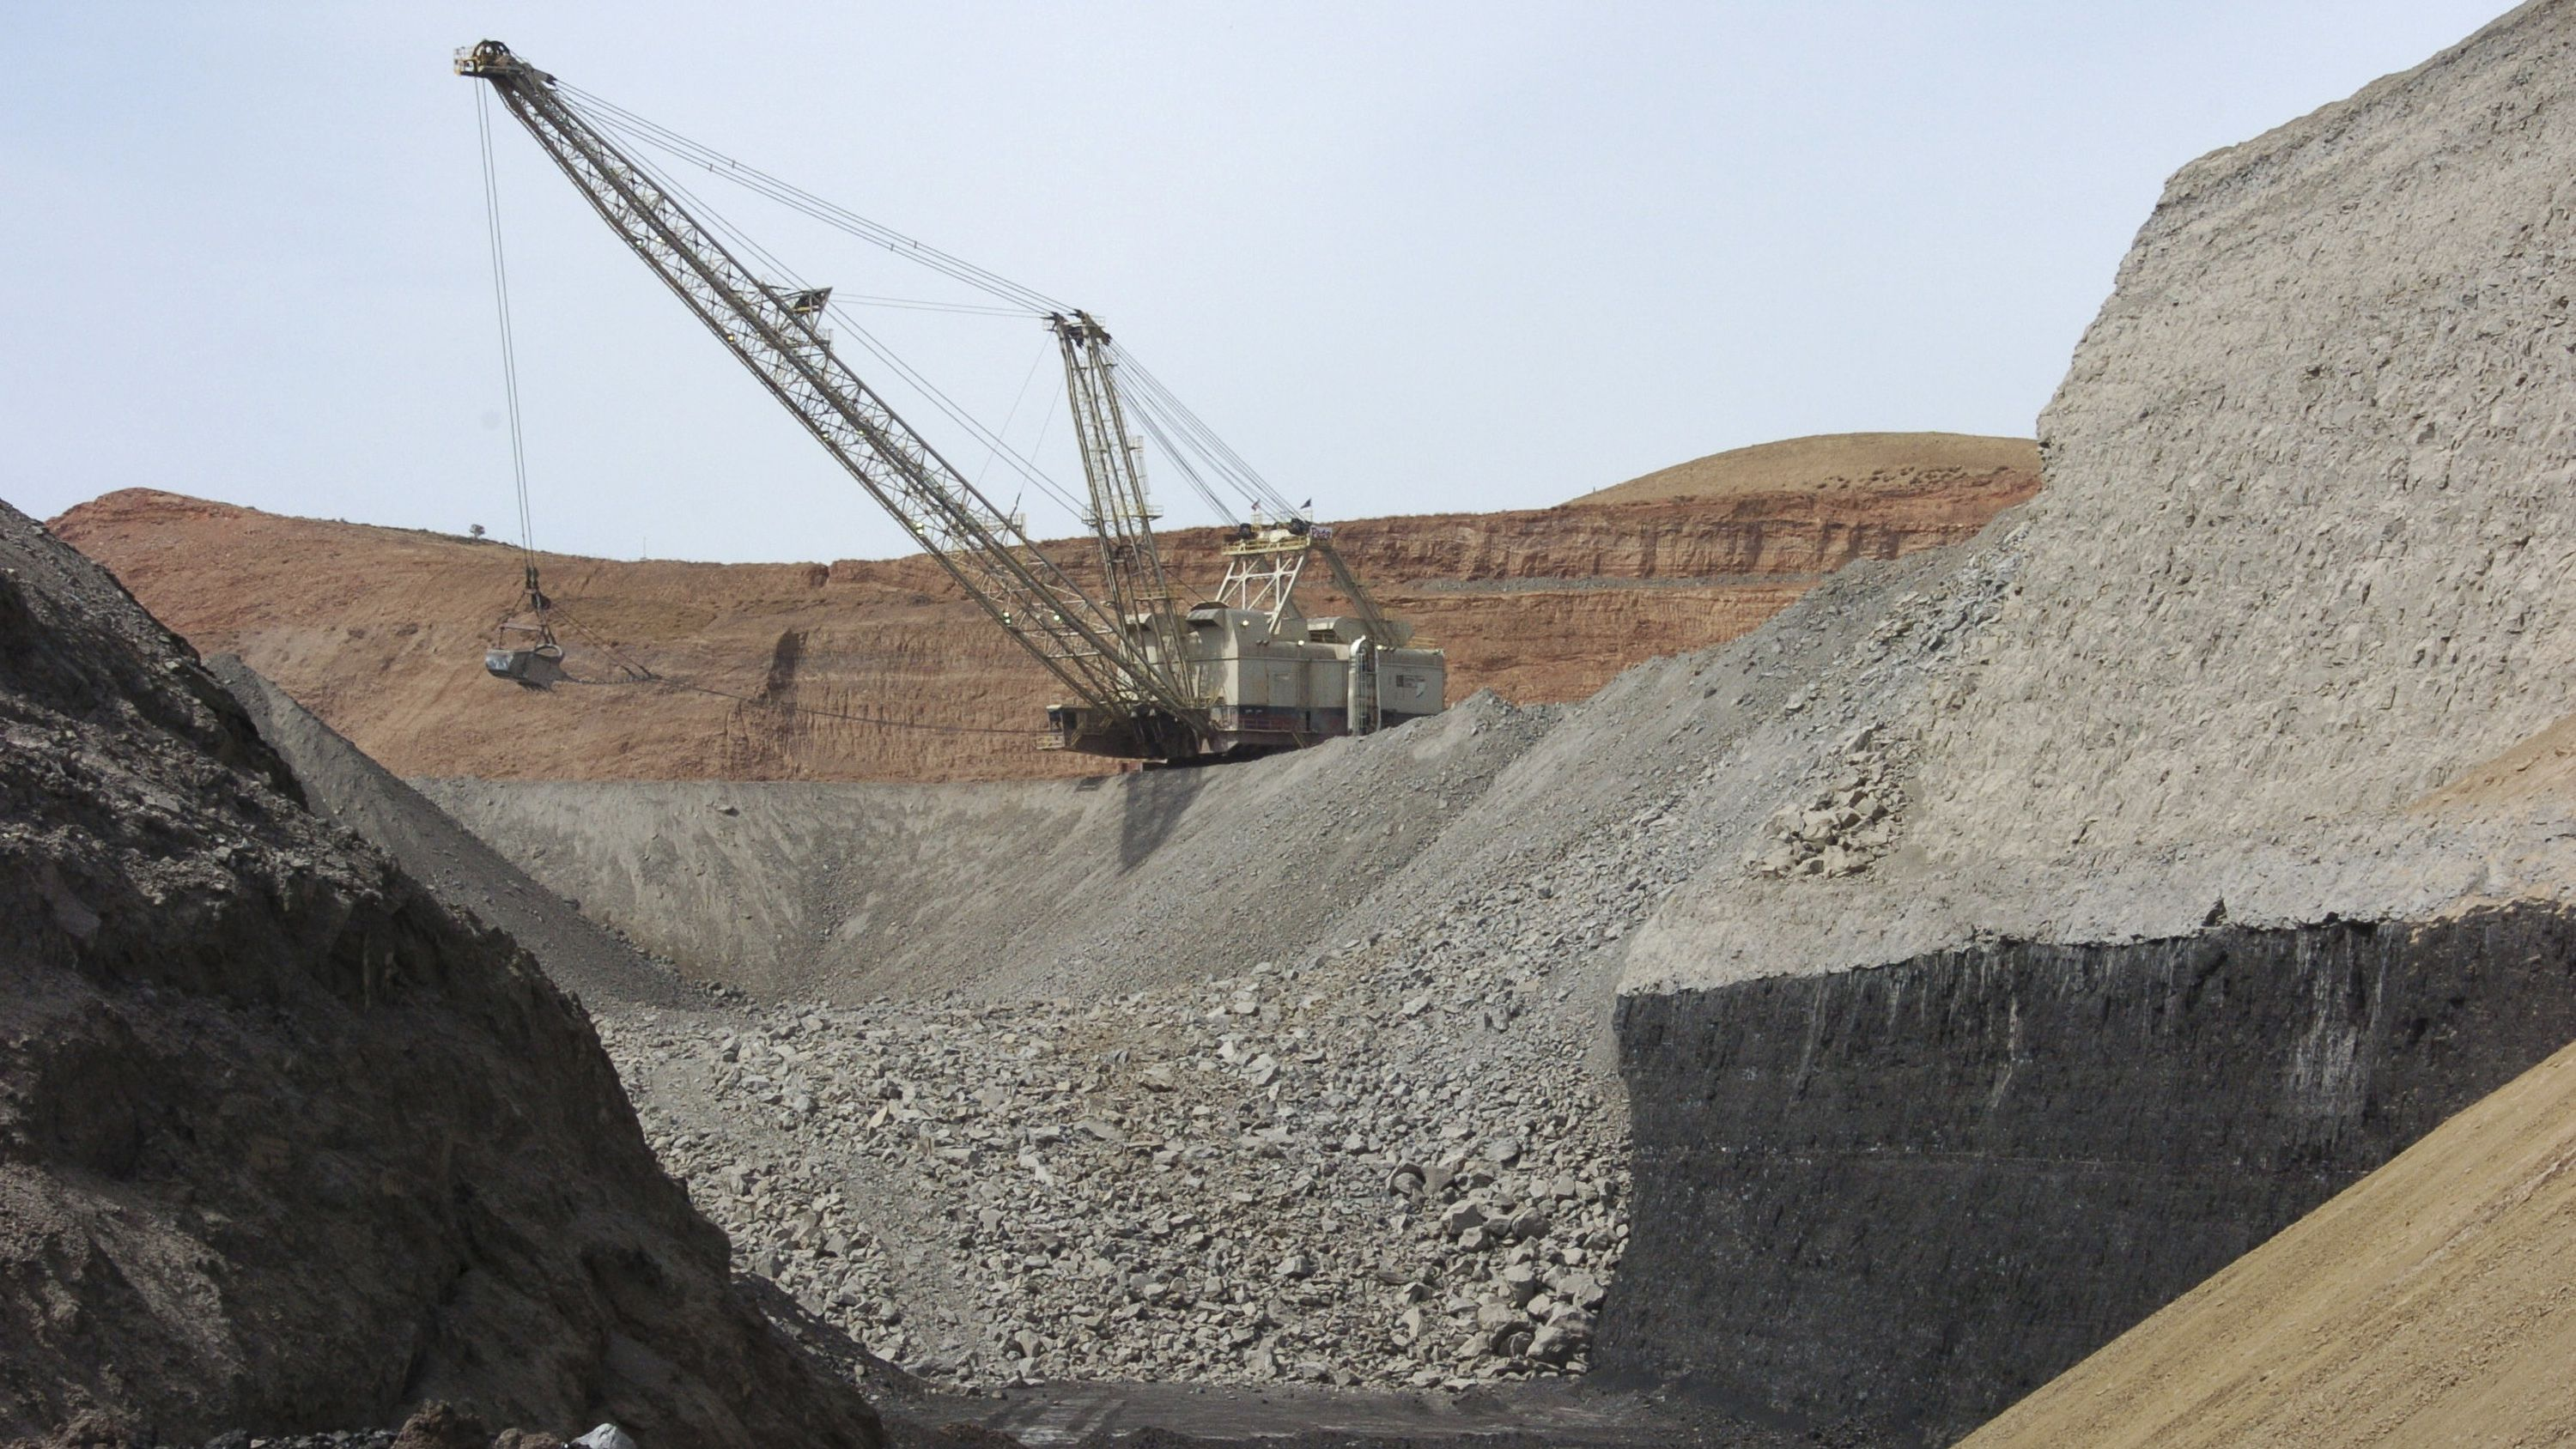 FILE--In this April 4, 2013, file photo, a dragline excavator moves rocks above a coal seam at the Spring Creek Mine in Decker, Mont. Renewable energy developers say they're hopeful about the future despite President-elect Donald Trump's promise to bring coal mining jobs back. In recent years, huge solar and wind farms have sprouted up on public desert land in the Western United States buoyed by generous federal tax credits. (AP Photo/Matthew Brown, File)